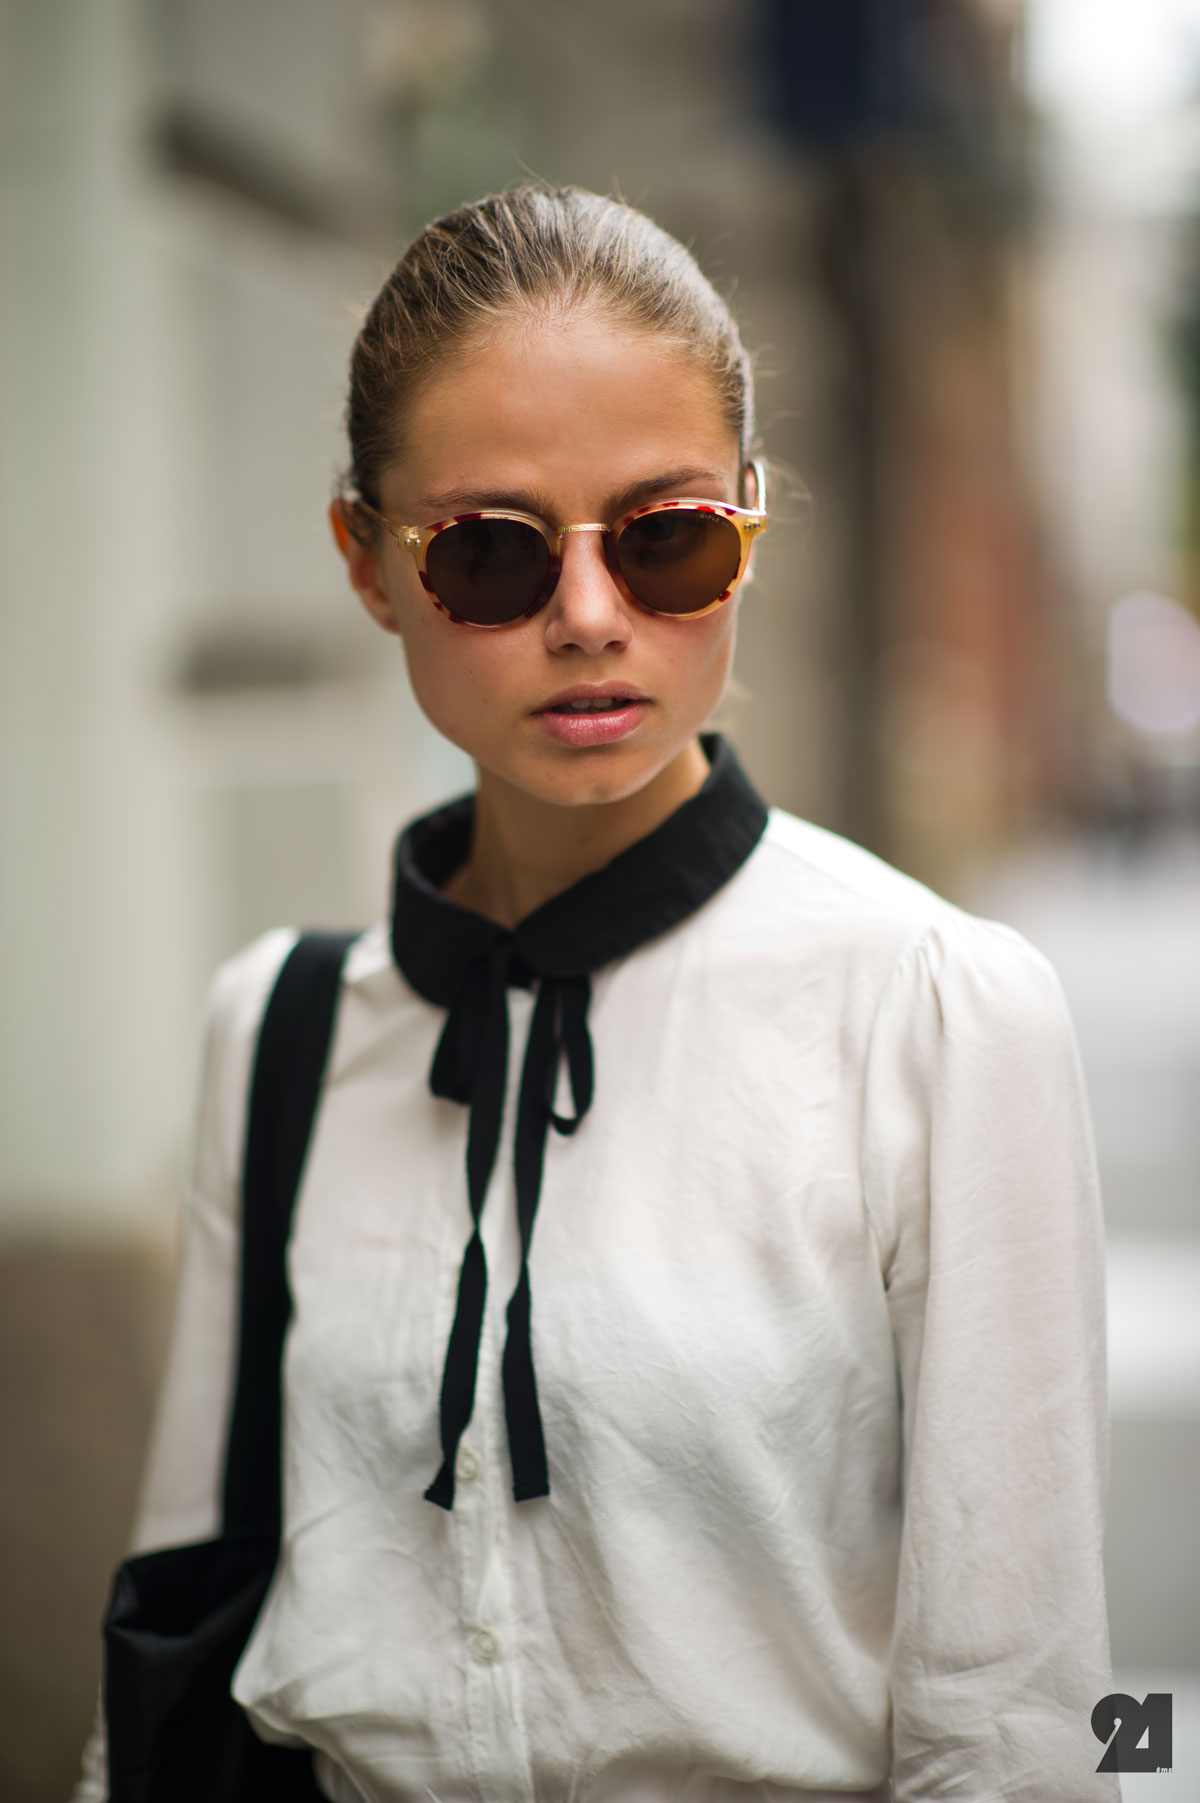 You Can Leave Your Shirt On! | Fashion Tag Blog